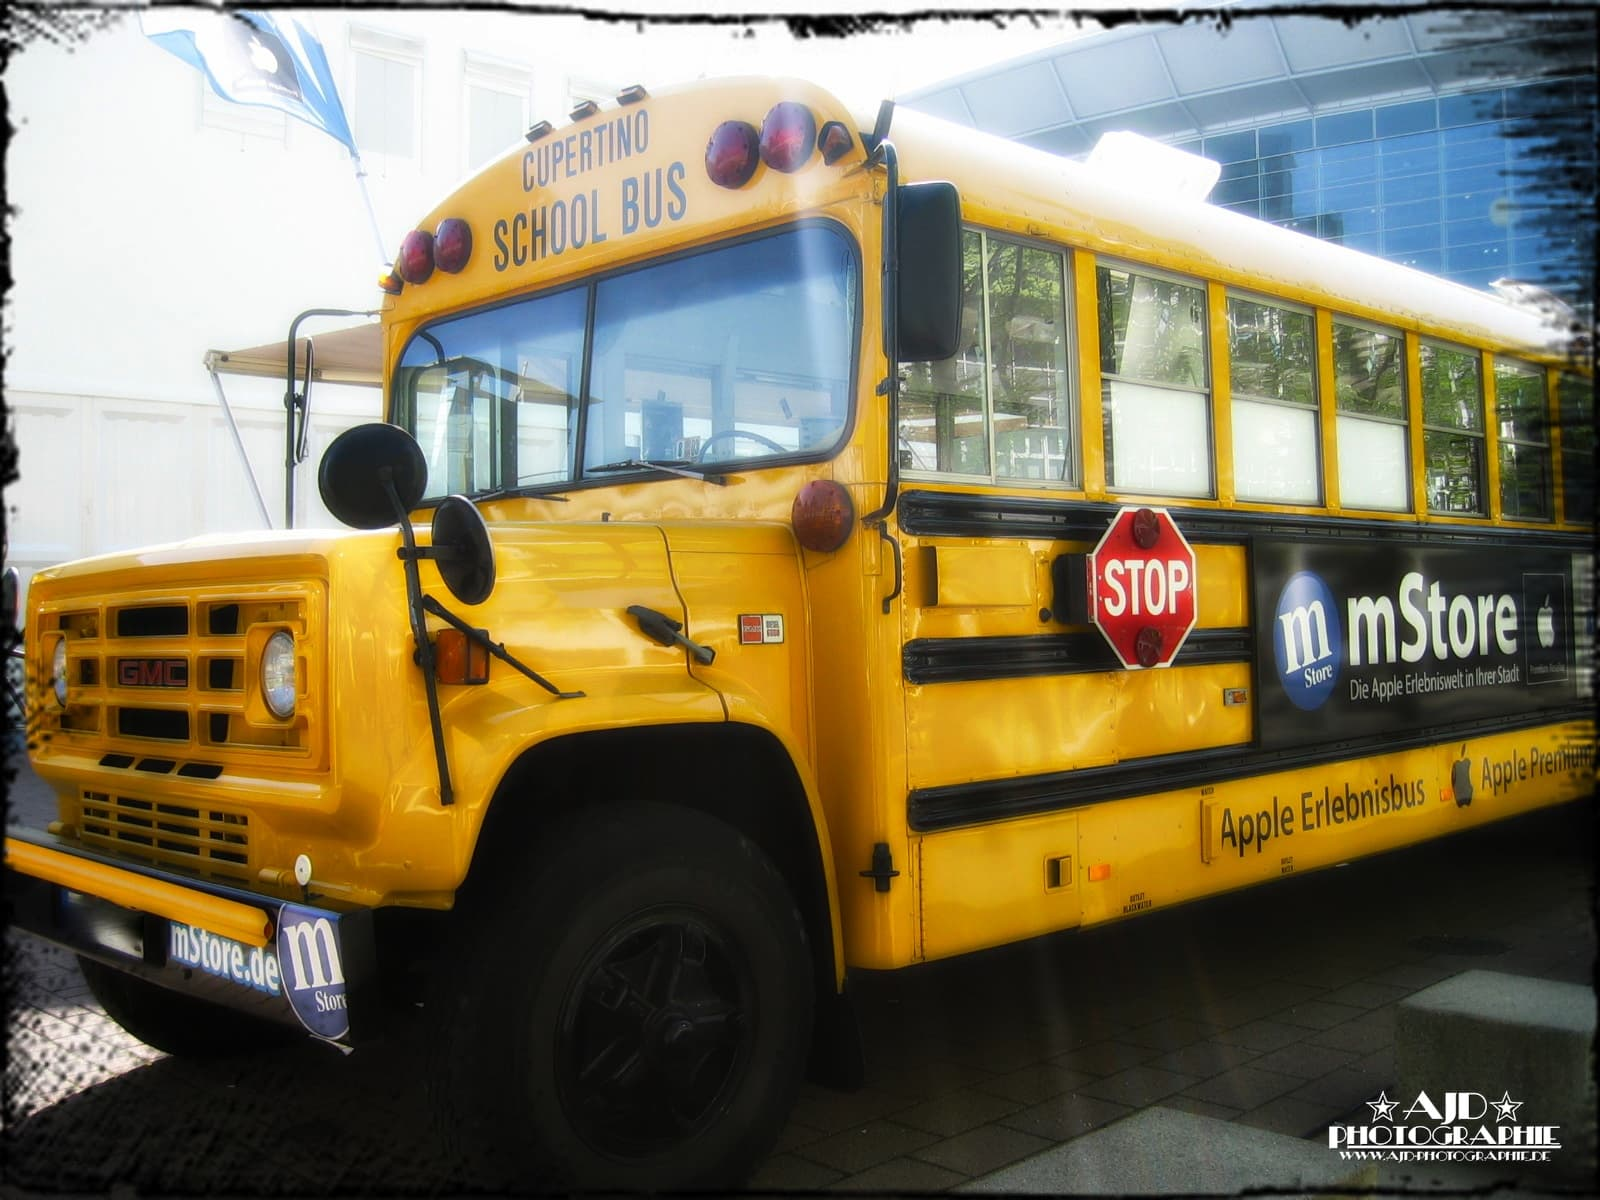 Cupertino School Bus